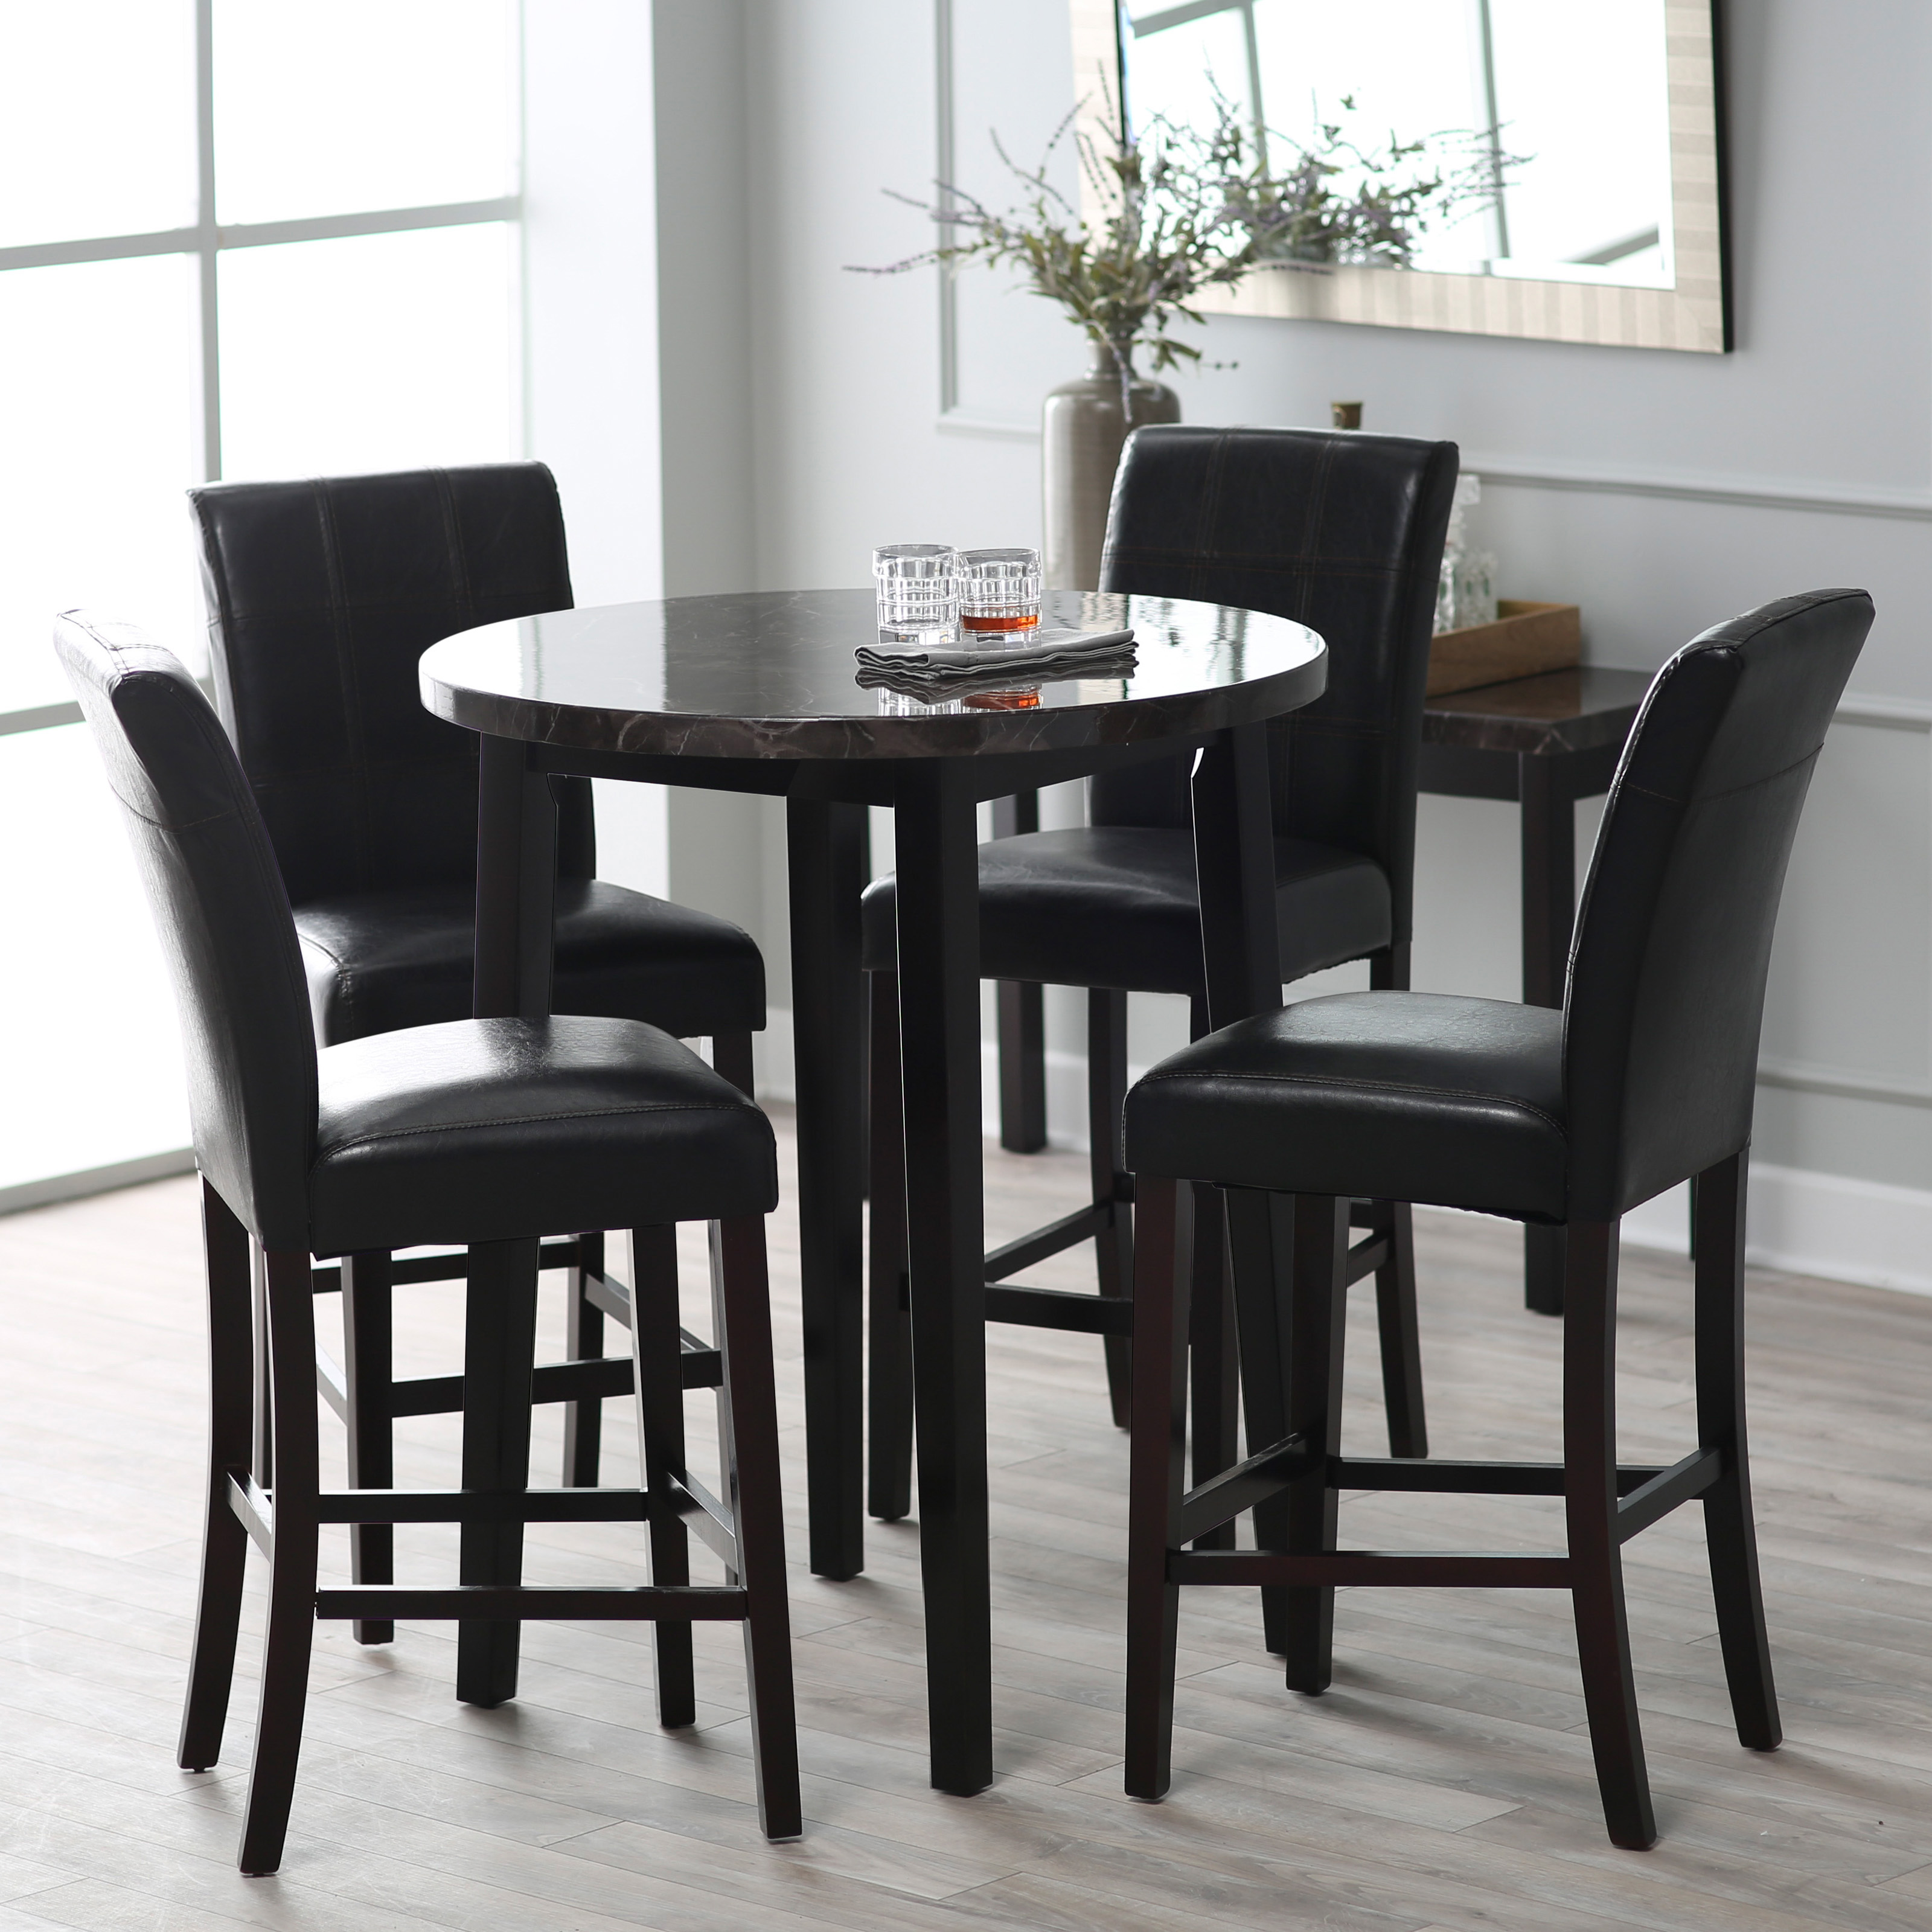 Tall Kitchen Tables With Bar Stools Intelligent Ways To